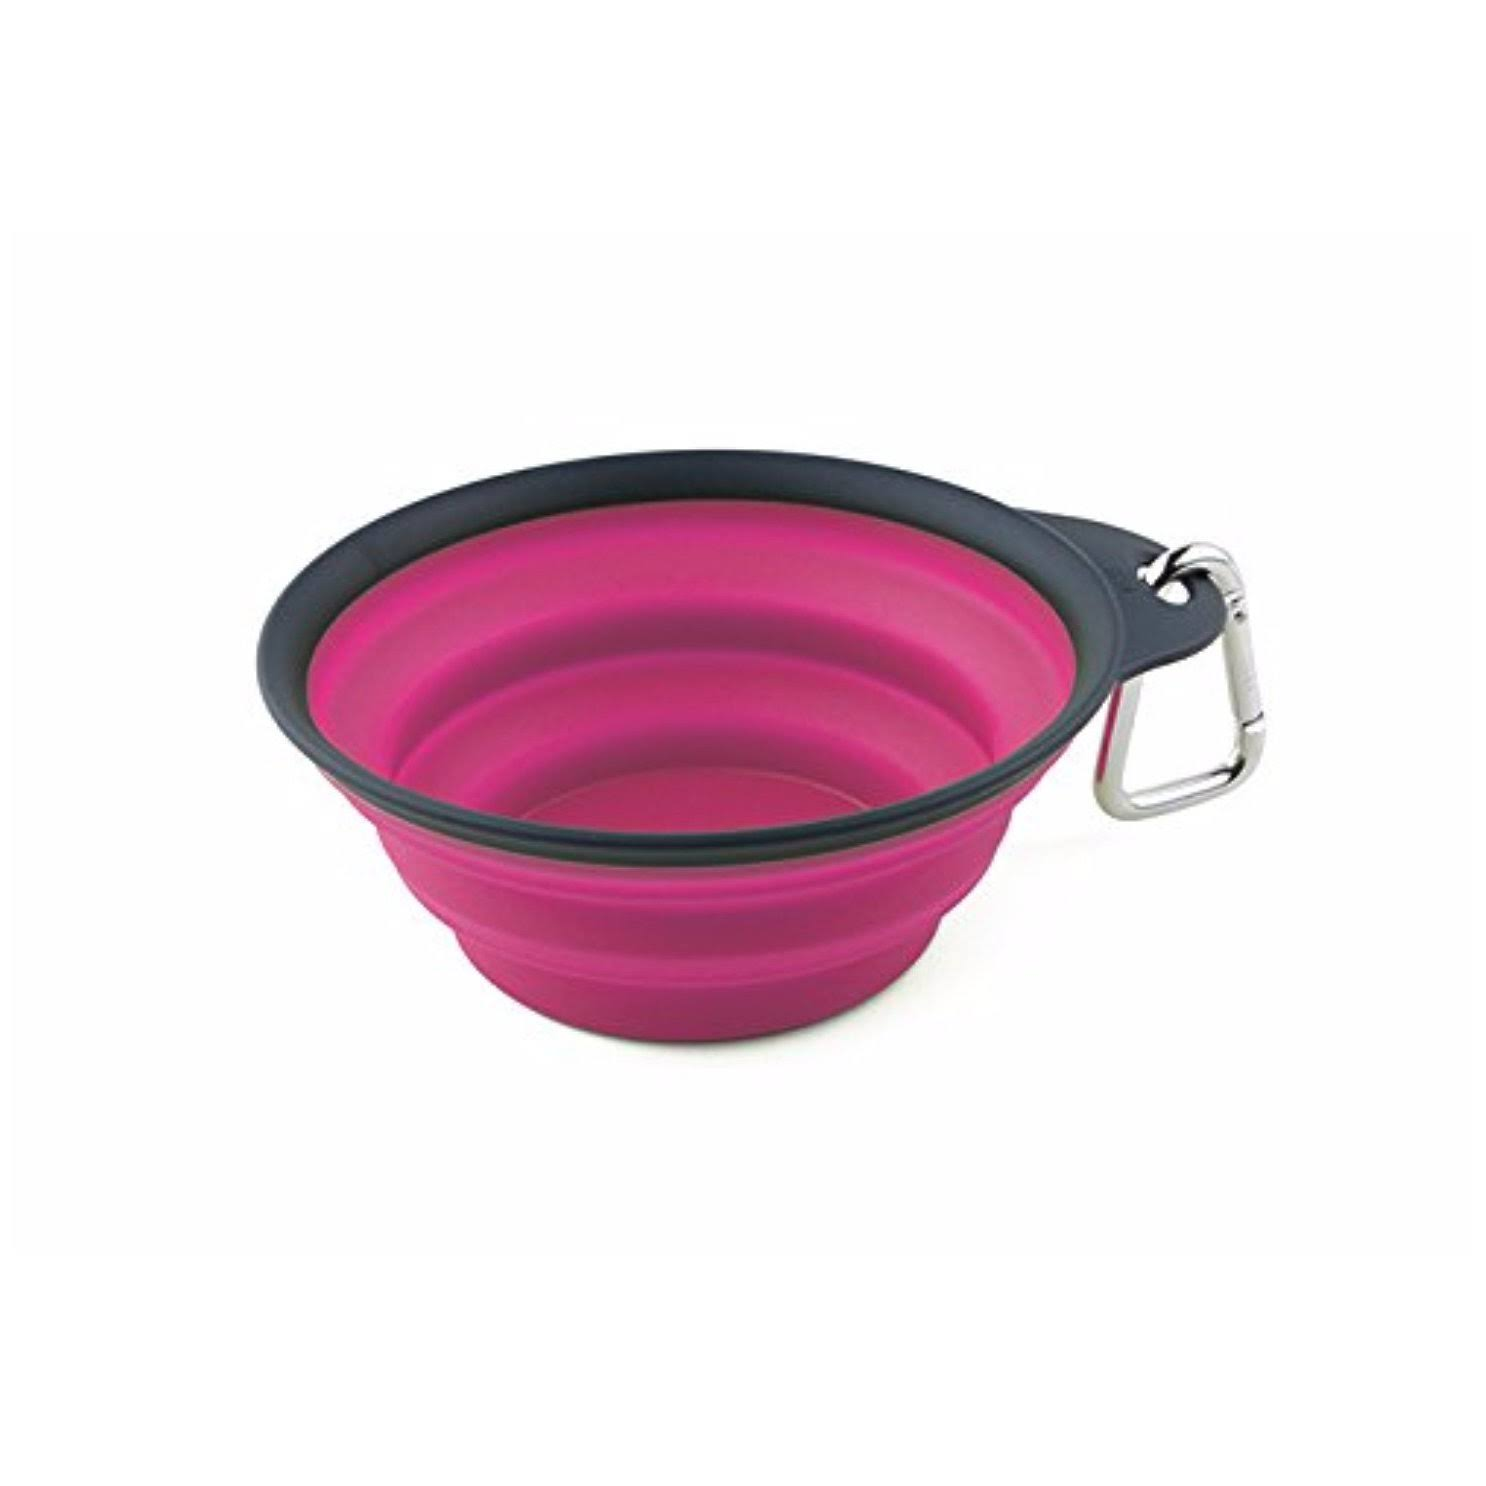 Dexas Popware Collapsible Travel Cup - Small, Gray, Pink